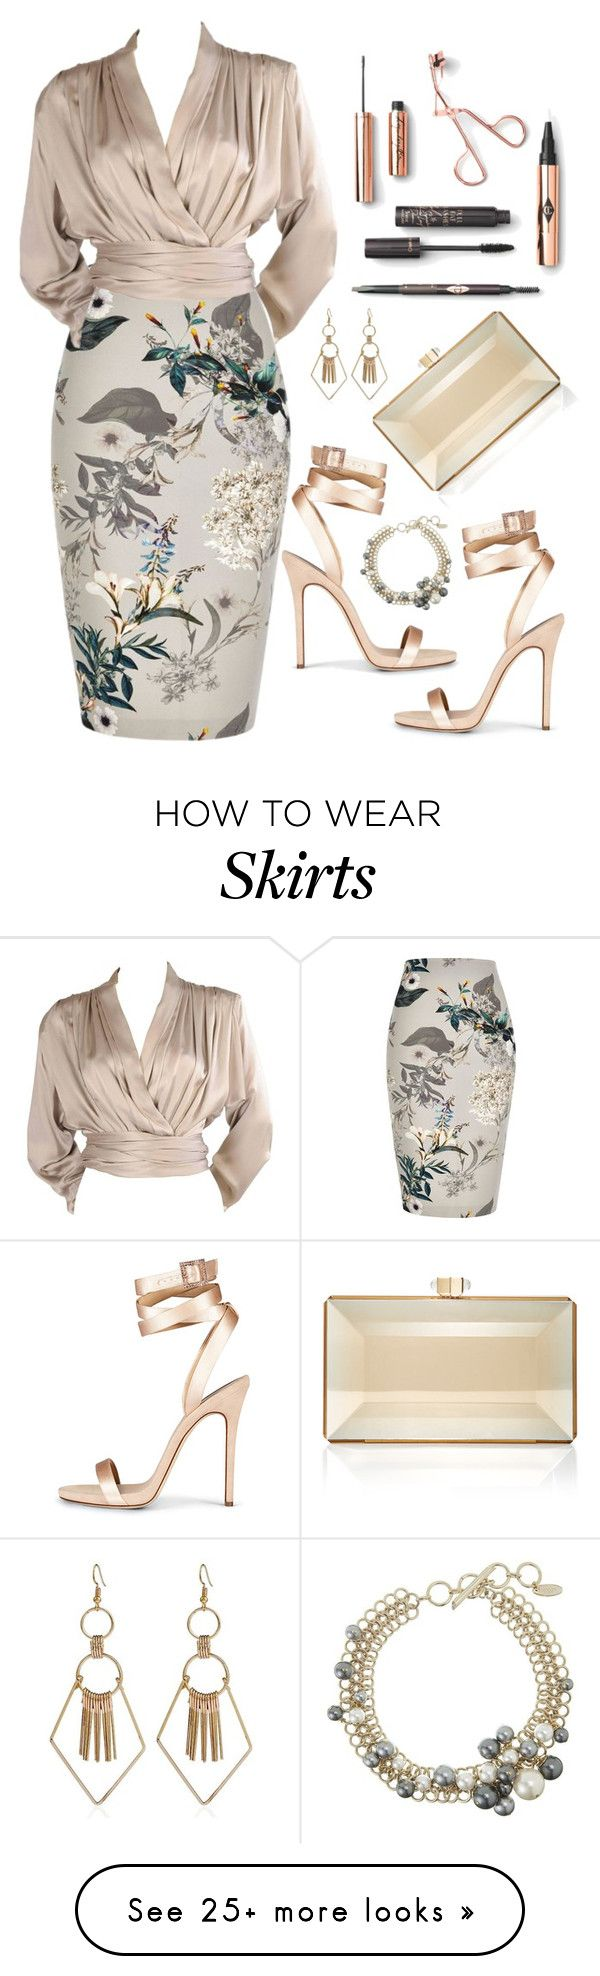 """""""Untitled #794"""" by ashantay87 on Polyvore featuring River Island, Yves Saint Laurent, Judith Leiber and Lanvin"""